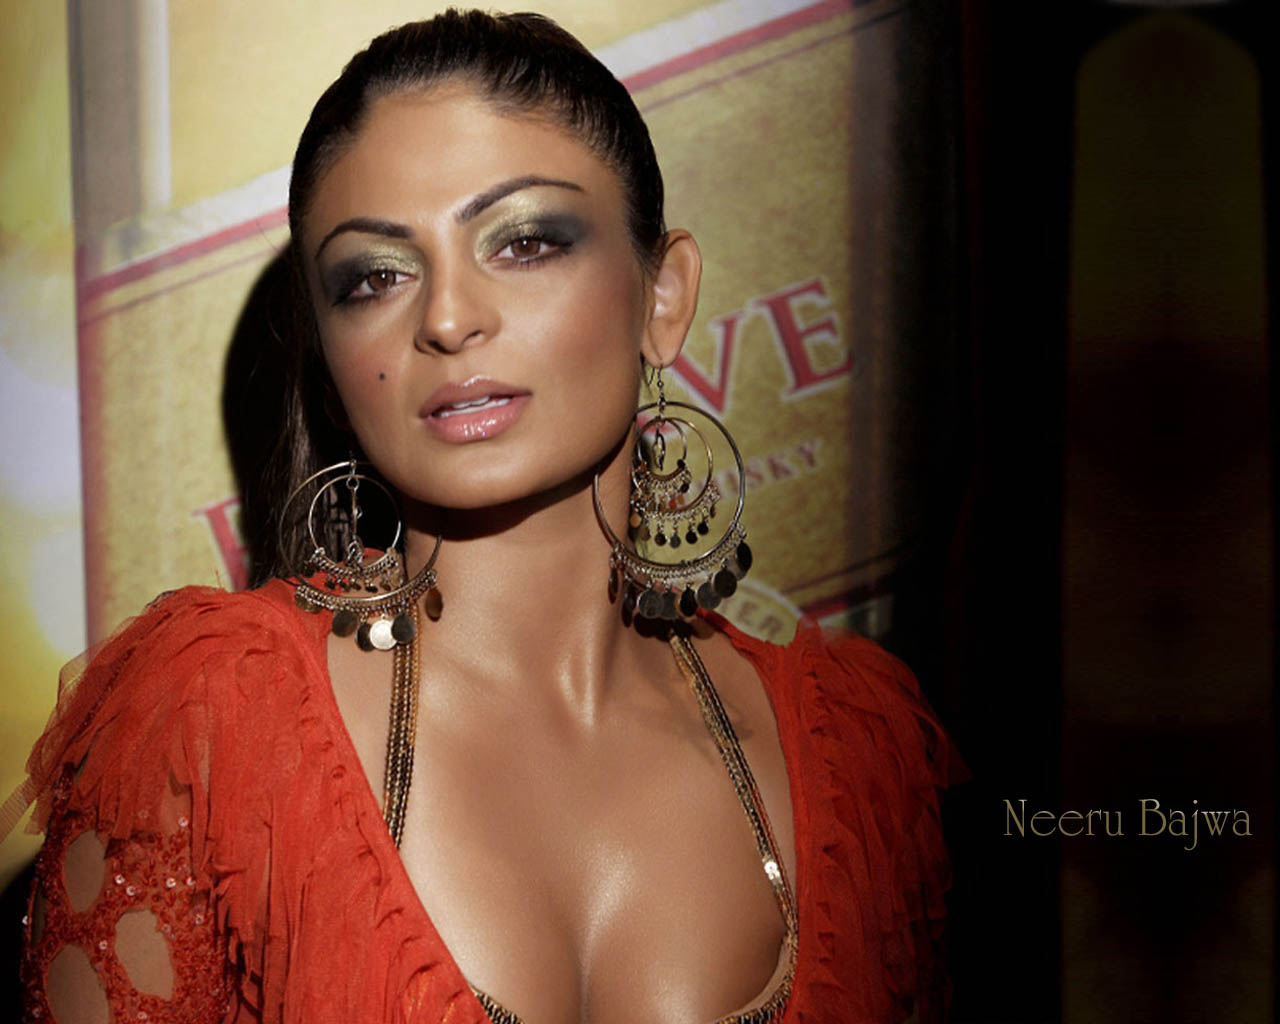 http://2.bp.blogspot.com/-aI6tyiAqiRg/TV0Z3YonLSI/AAAAAAAAIQ8/bJ0s9mArVMw/s1600/neeru-bajwa-hot-photos.jpg